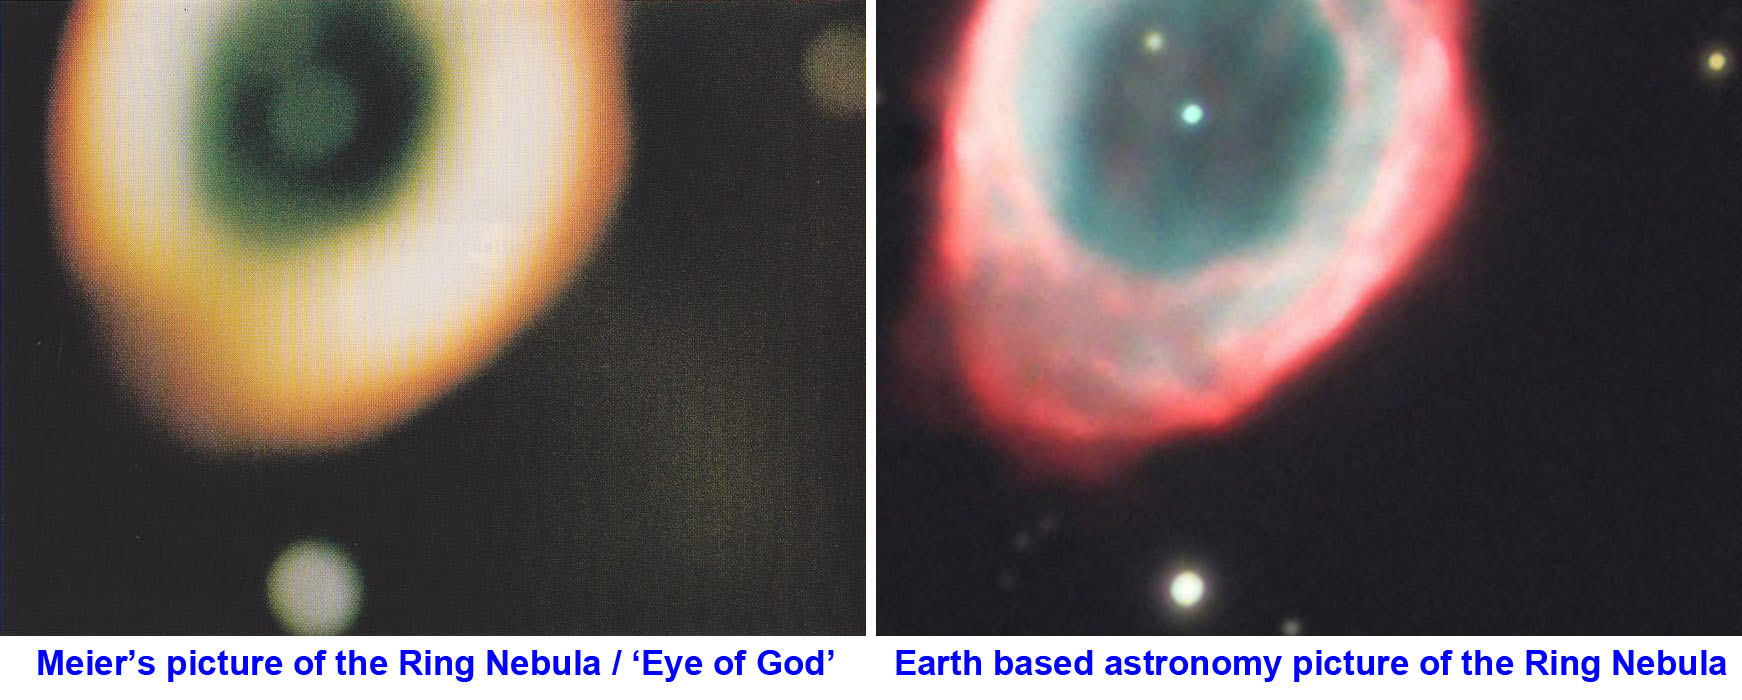 Ring Nebula - Comparison